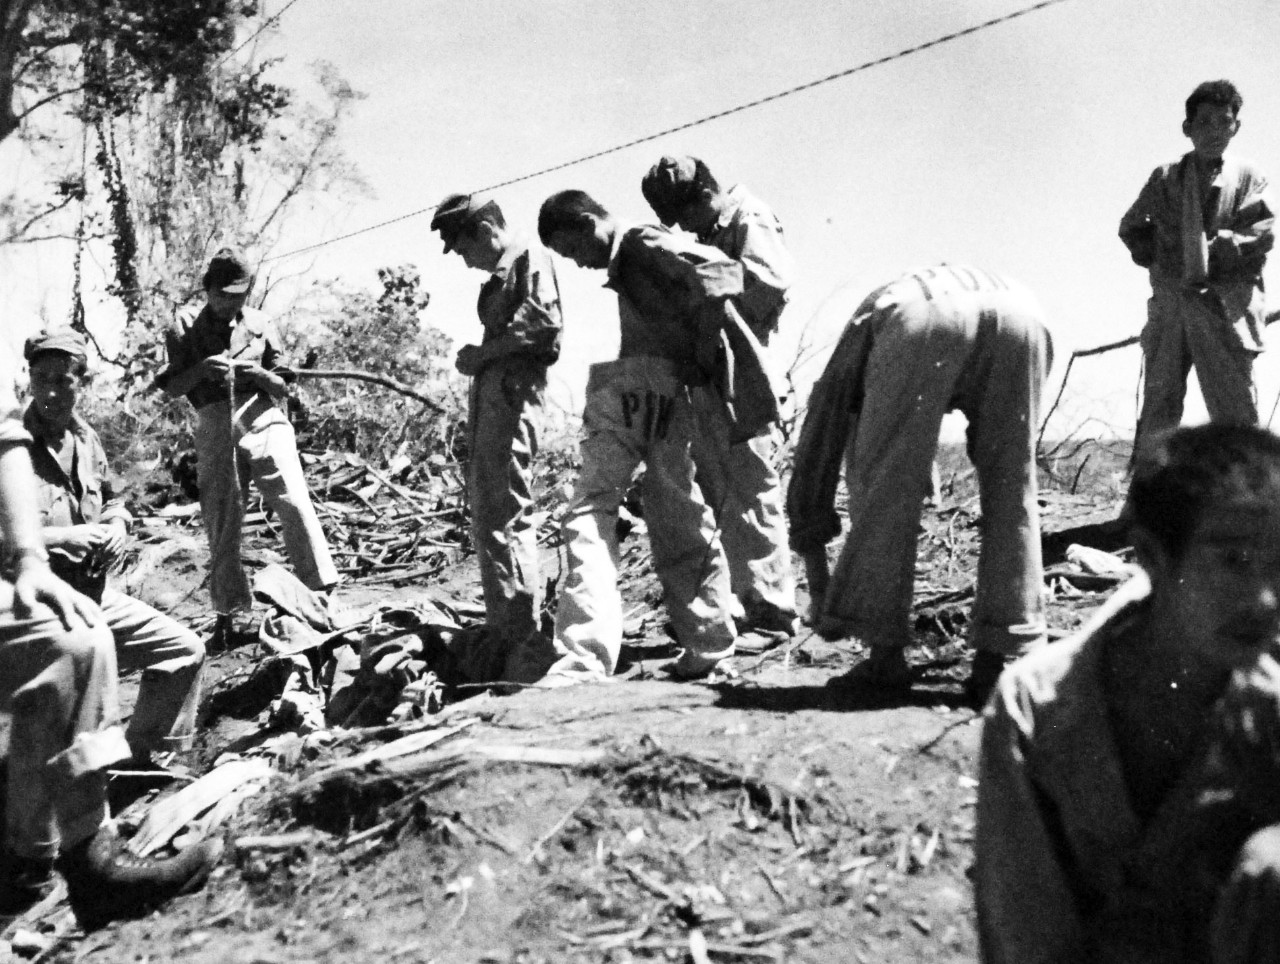 127-GW-971-89059:  Battle of Cape Gloucester, New Britain, December 1943-January 1944.  Japanese prisoners putting on clean closes.  Photographed by Howard, March 1944.  Official U.S. Marine Corps Photograph, now in the collections of the National Archives.   (2014/7/9).